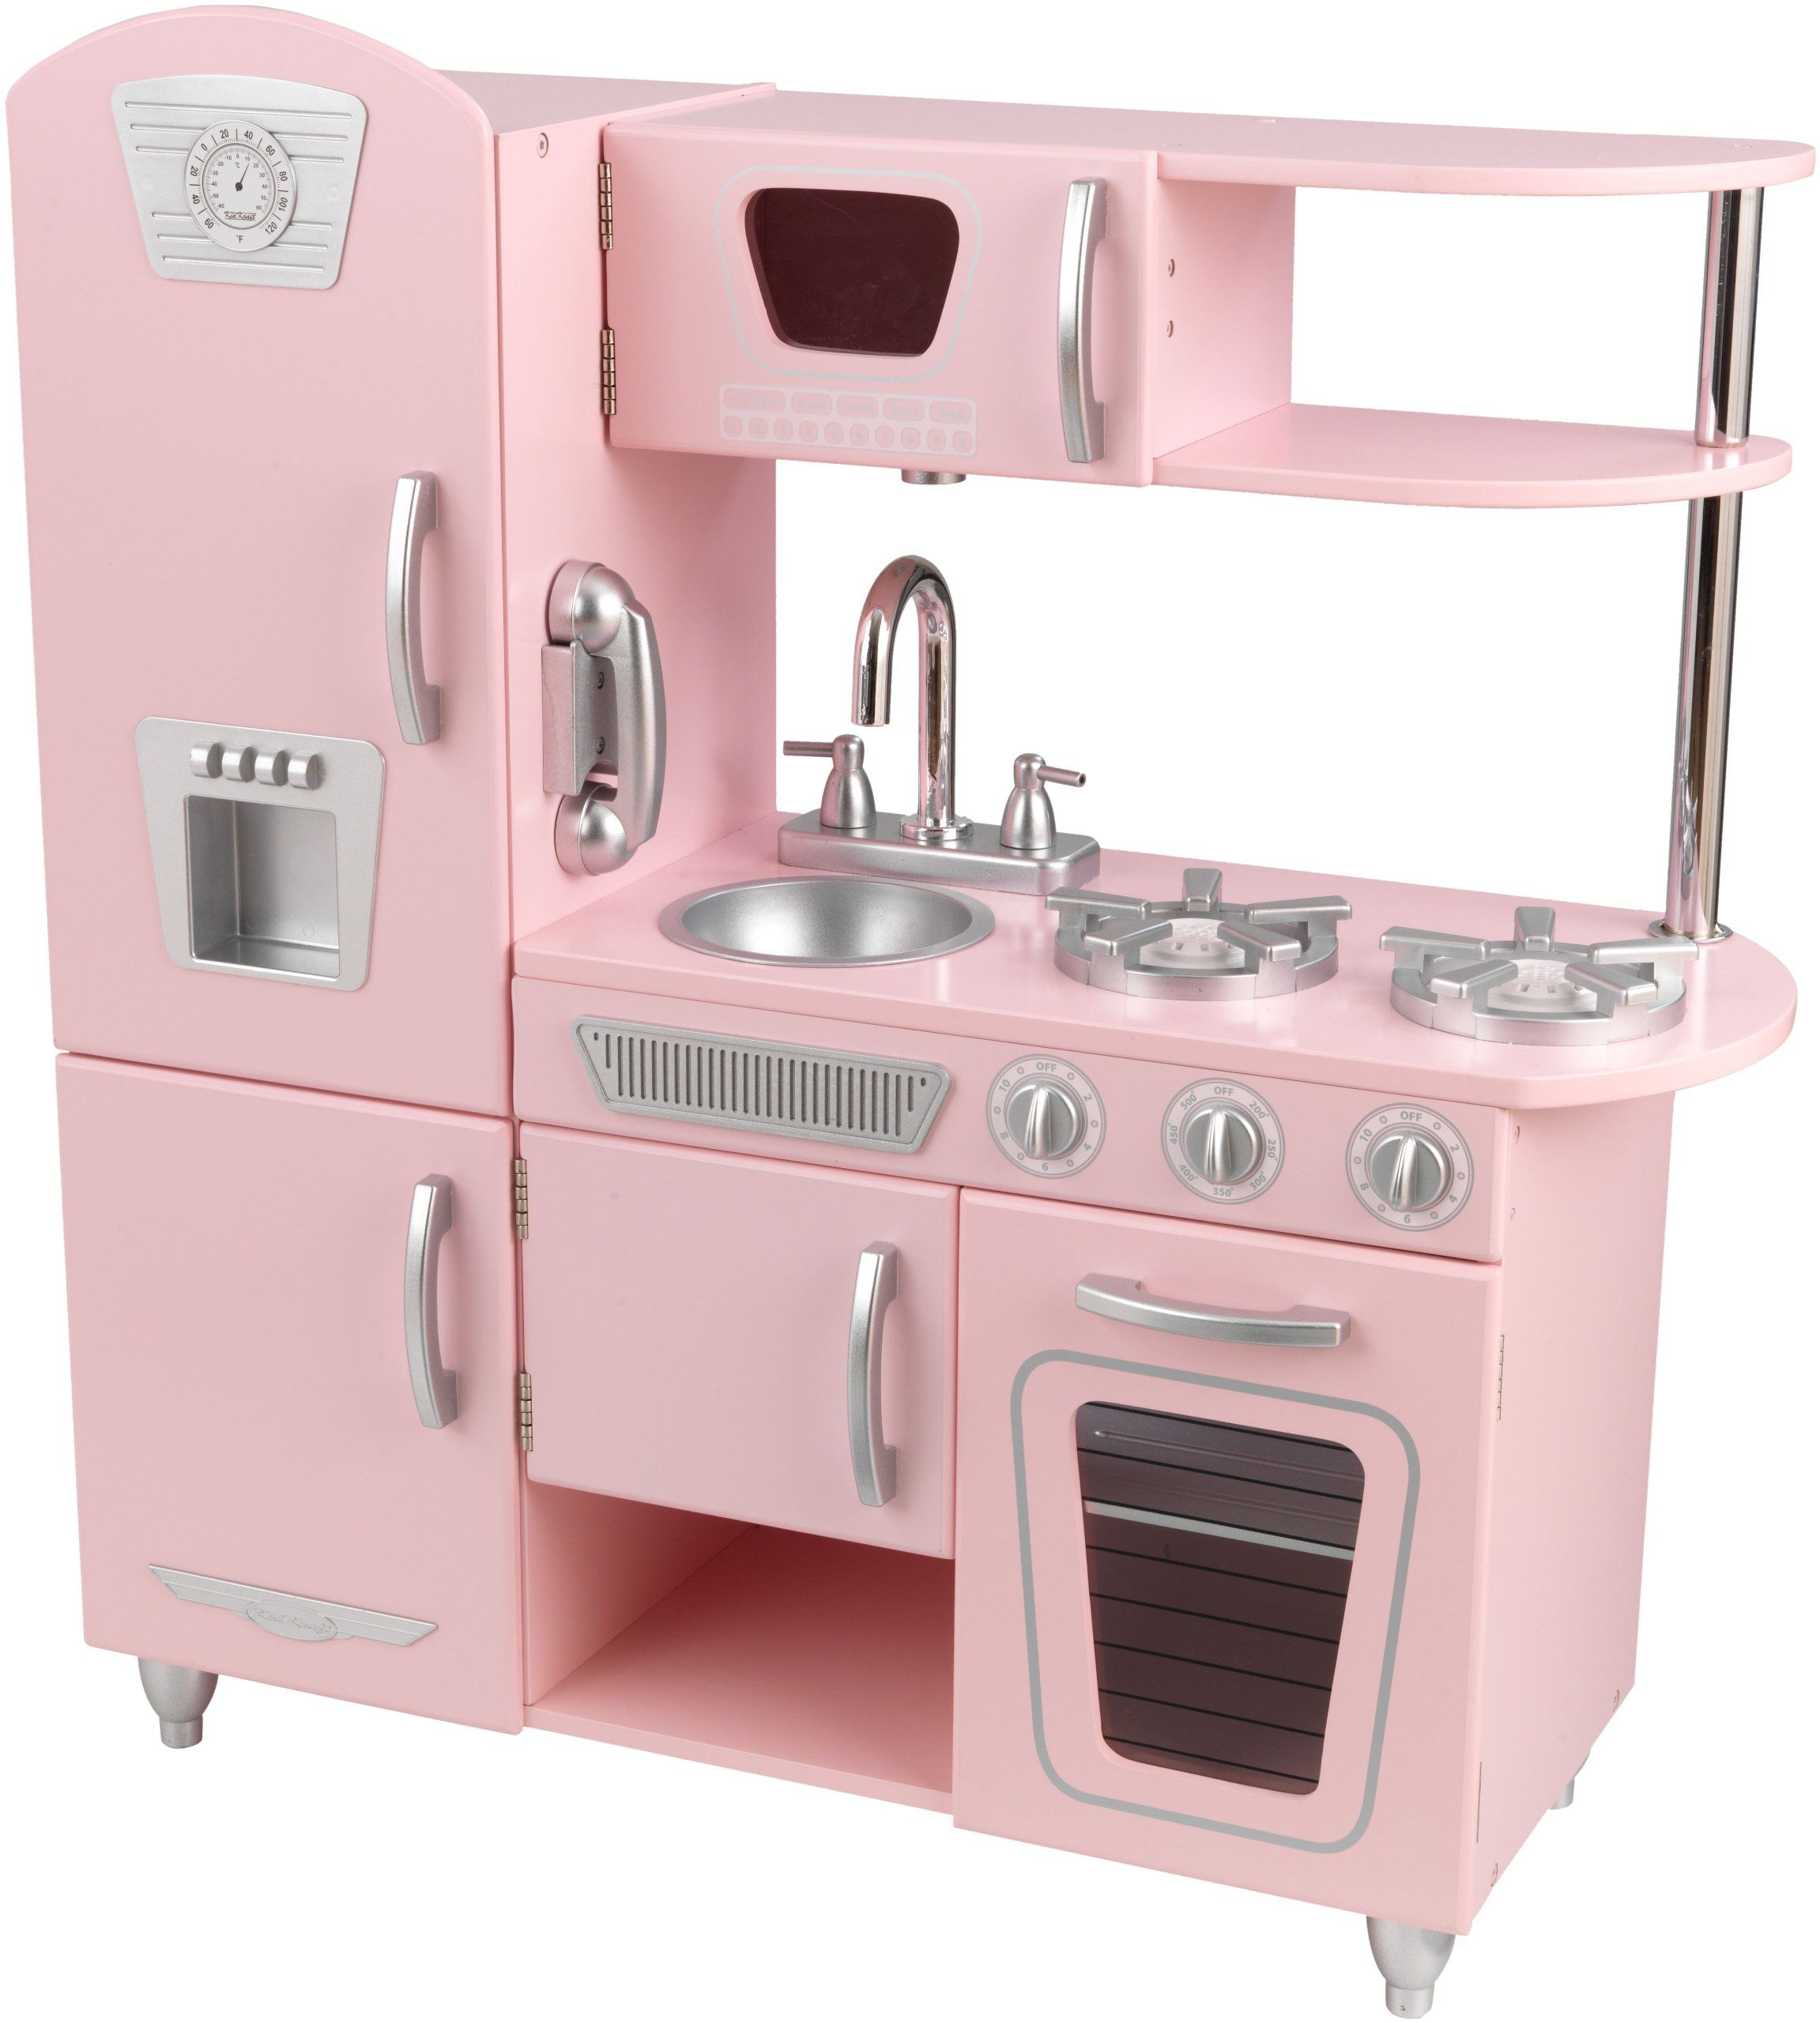 Amazon.com: Kidkraft Vintage Kitchen in Pink: Toys & Games ...